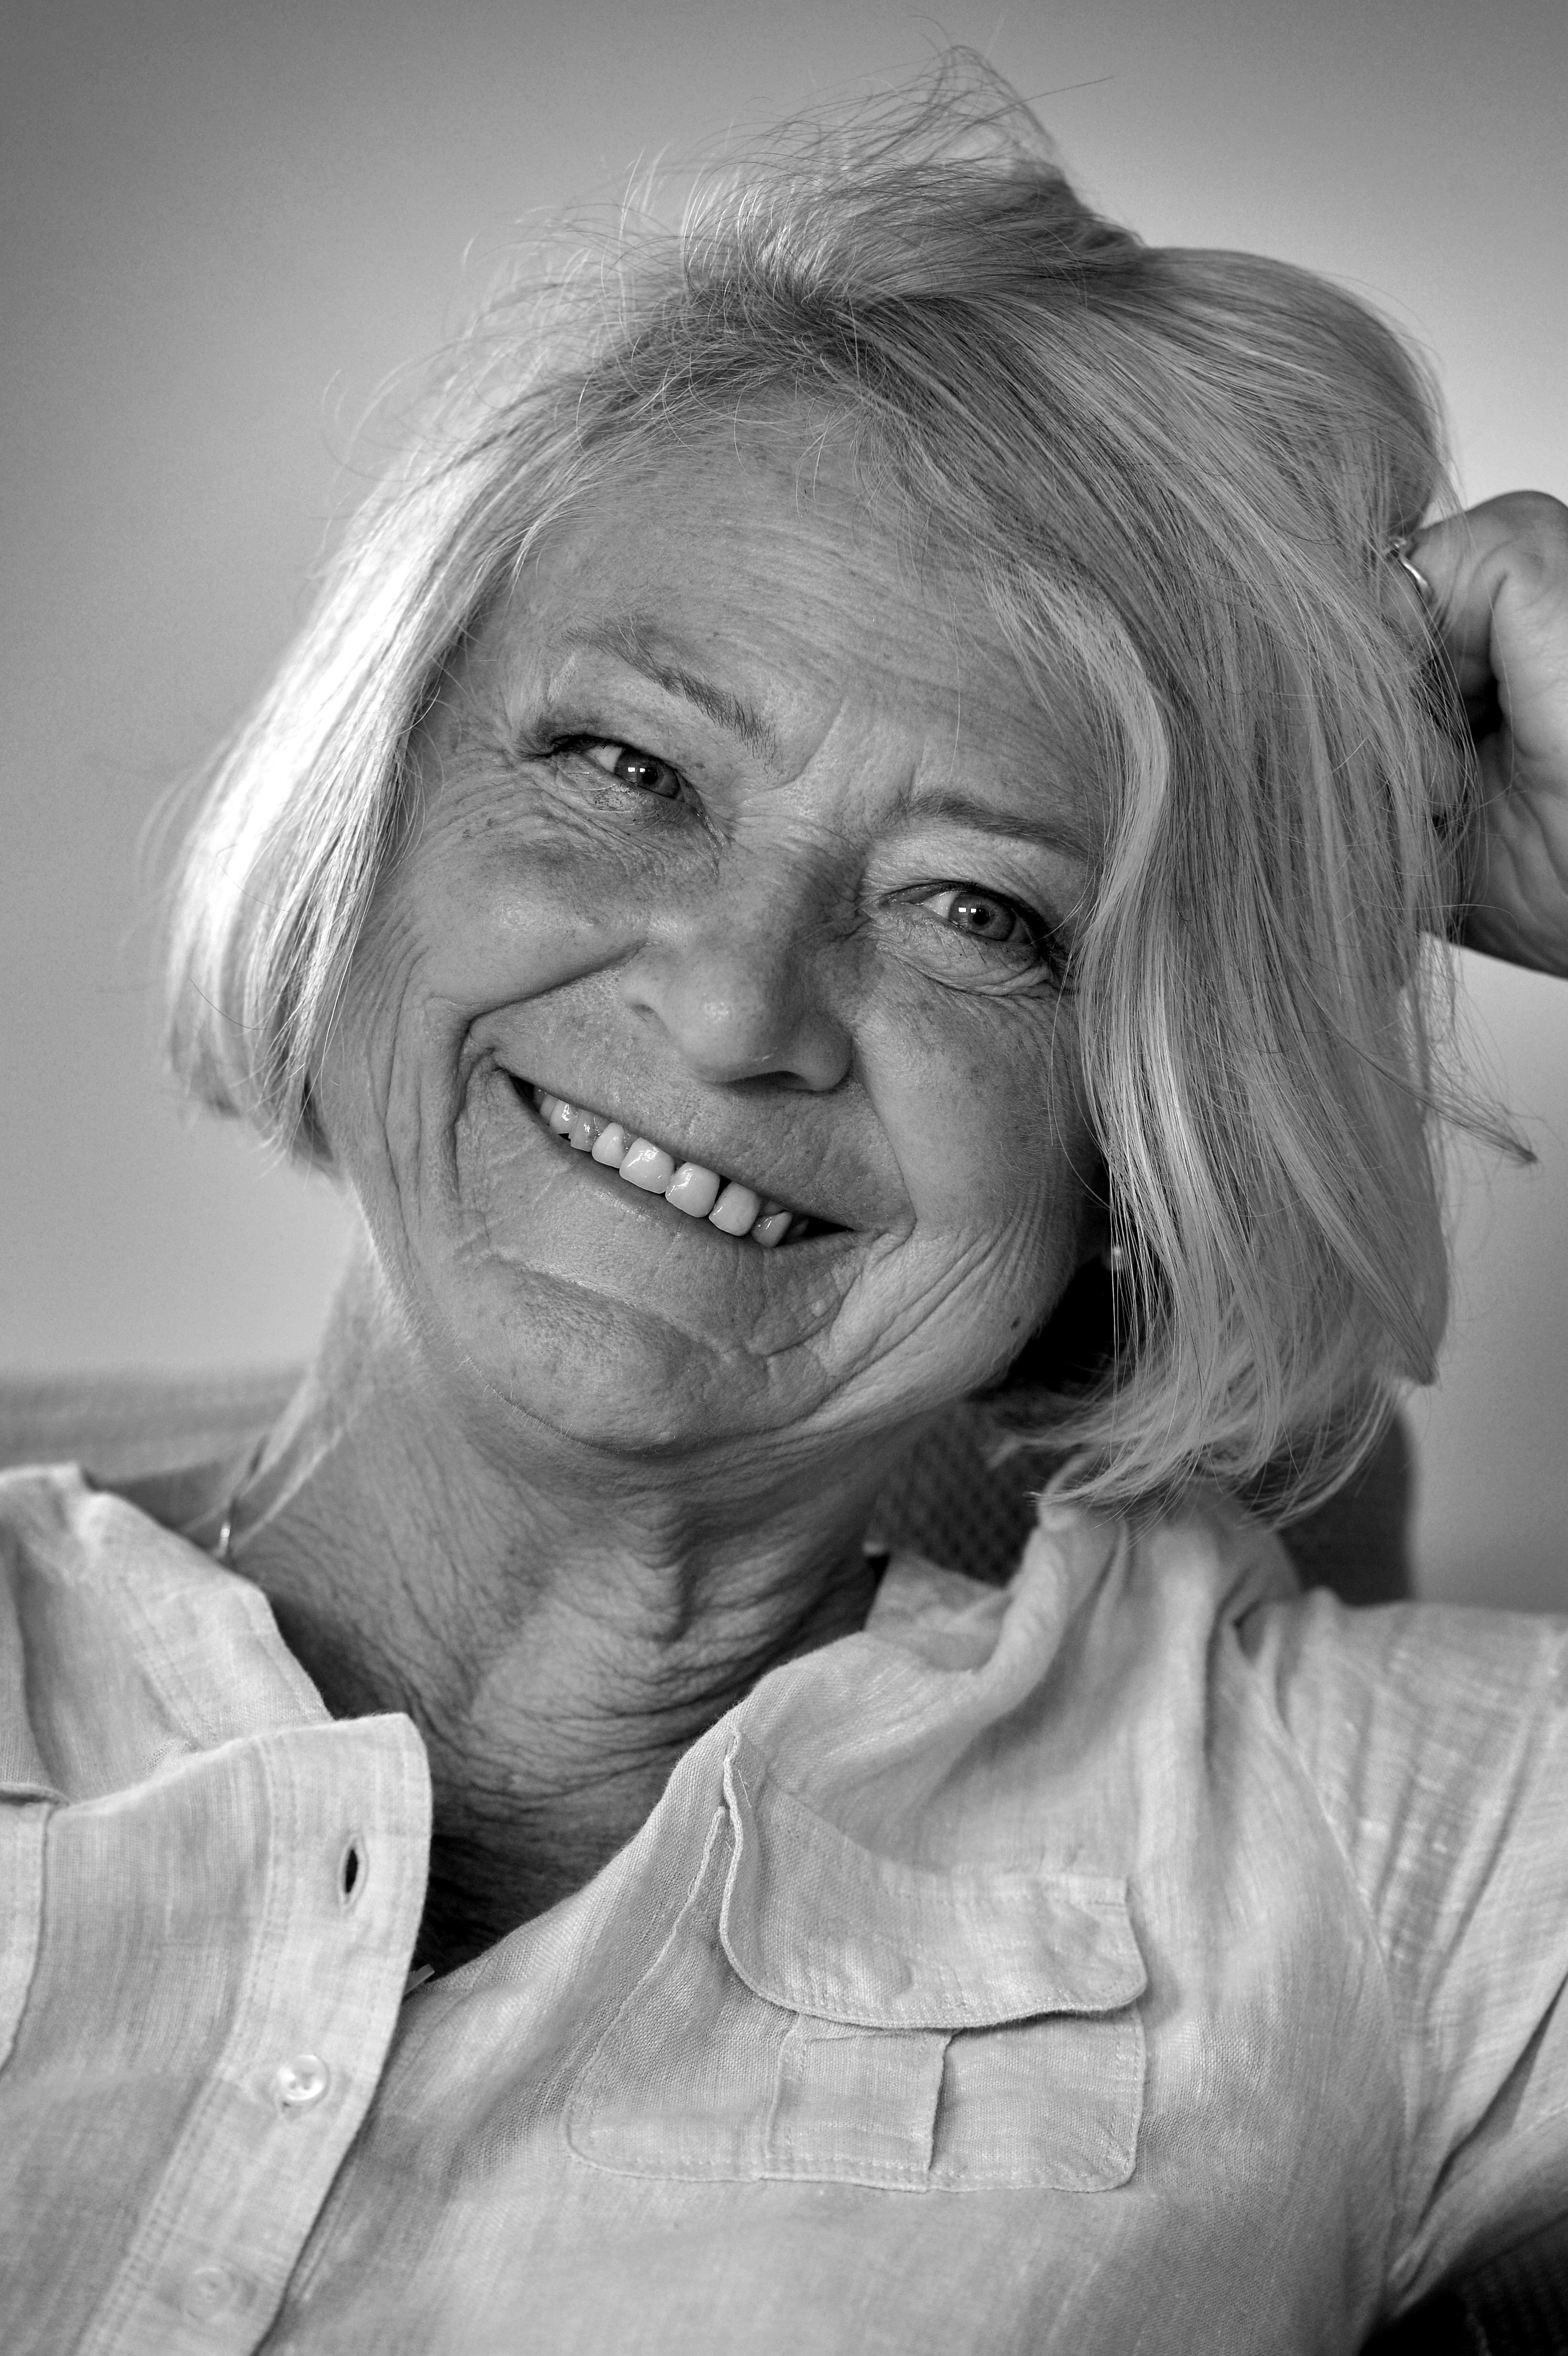 A terrific picture of the very inspiring Kate Adie who features in our September issue. Globe-trotting journalist, local radio farming producer, author and Farm Africa charity ambassador. http://www.countrysideonline.co.uk/the-magazine/digital-edition/